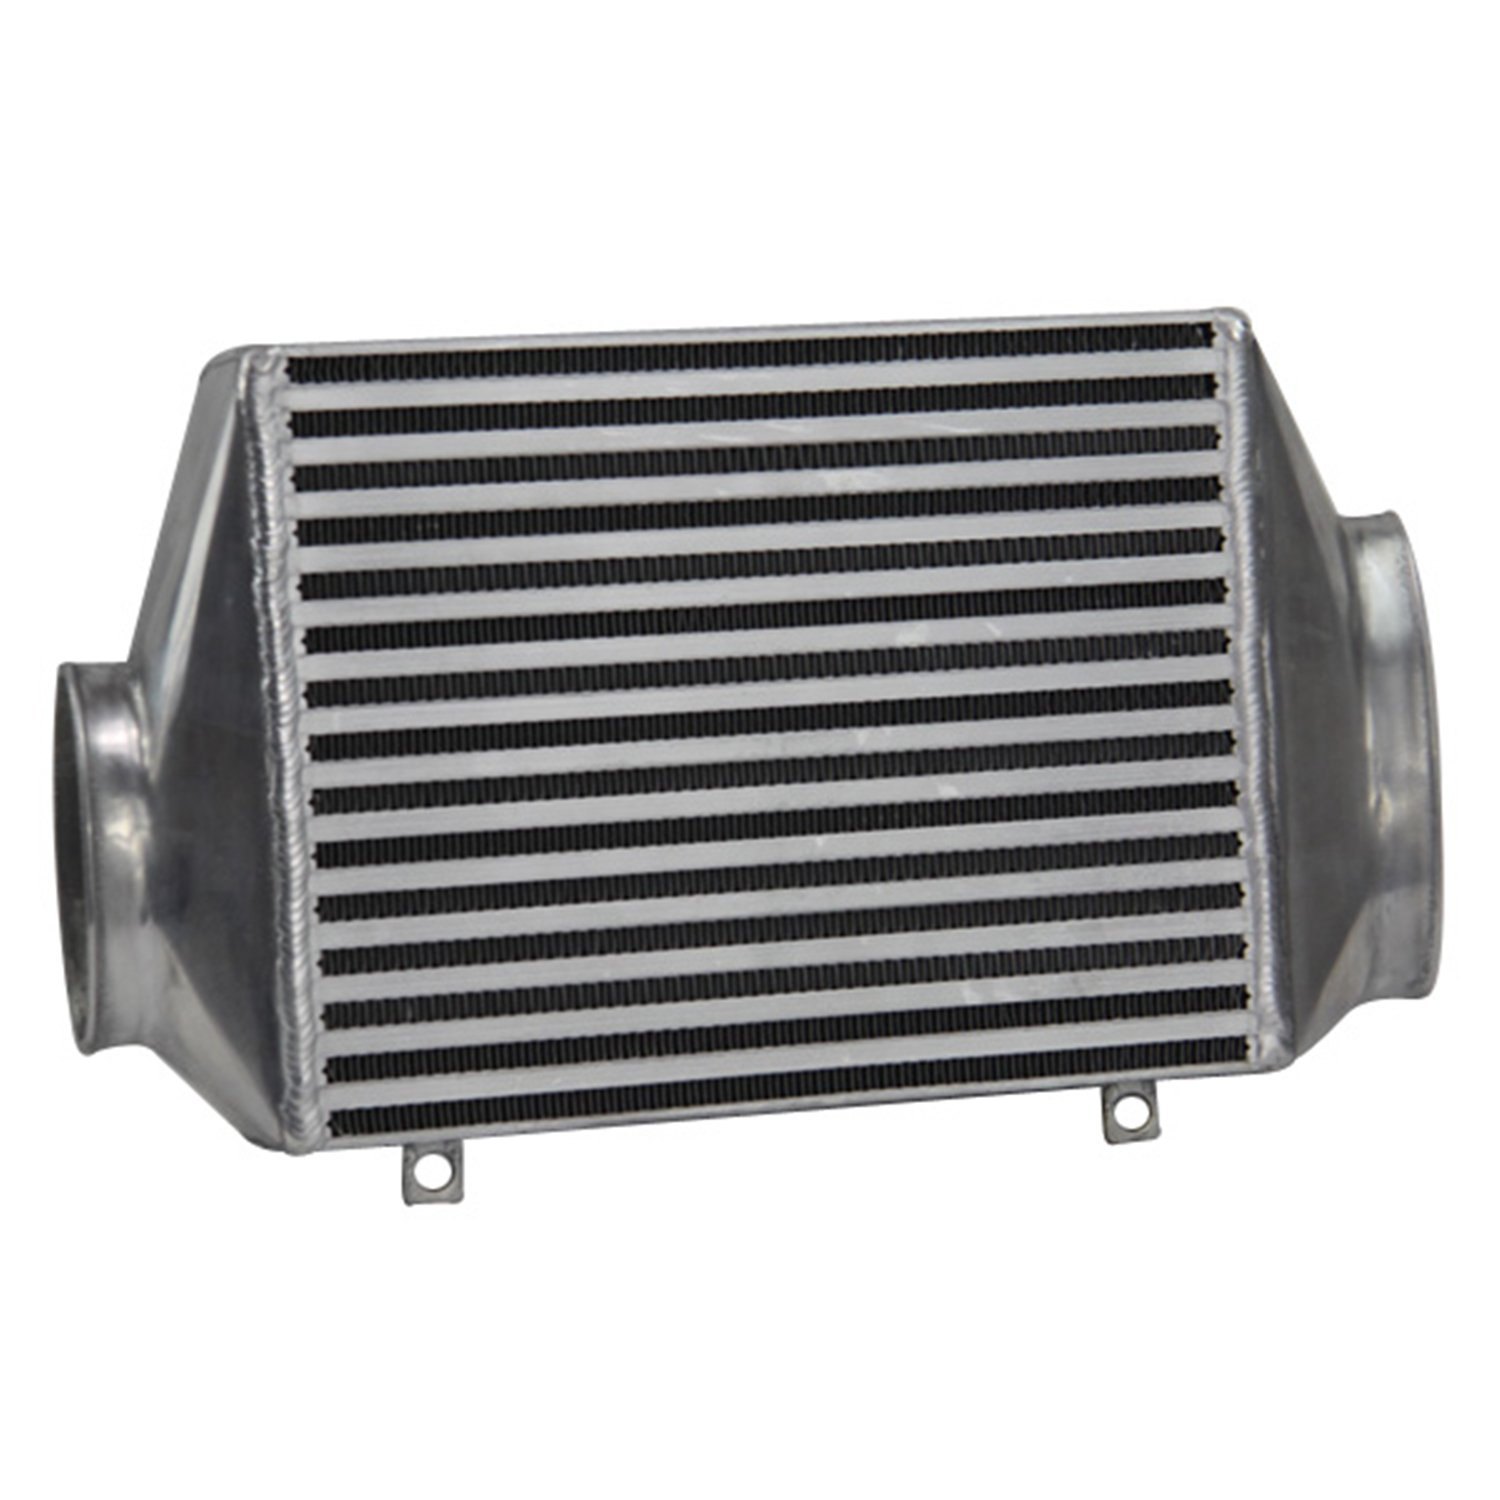 Primecooling Mount Supercharged Aluminum Intercooler for BMW Mini Cooper S R53 2002-2006 (2.36'' Core Thickness) Prime Cooling